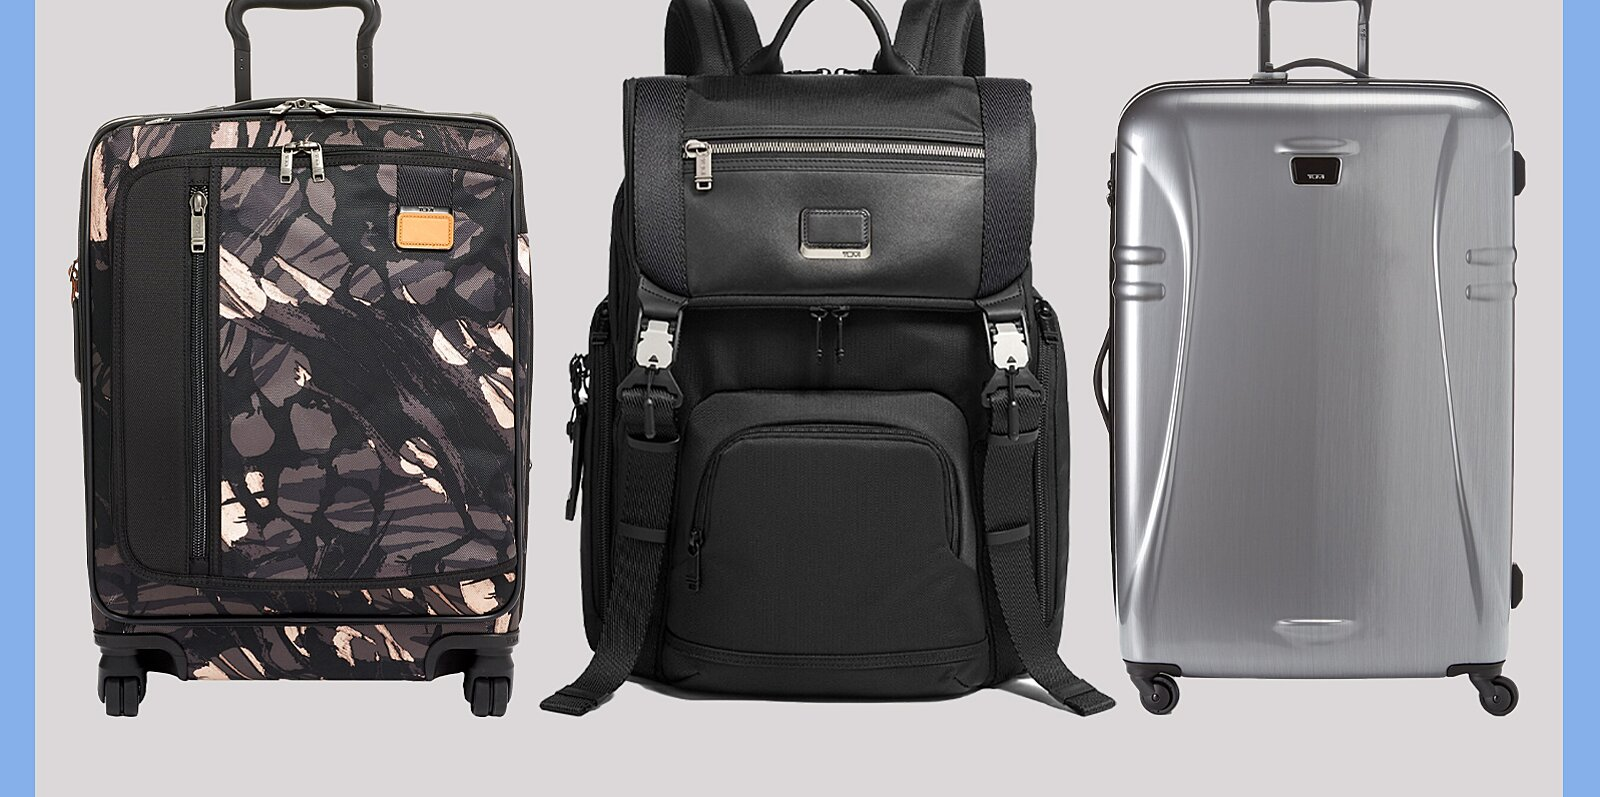 Tumi's Best-selling Suitcases and Bags Are Nearly Half Off in This Flash Sale